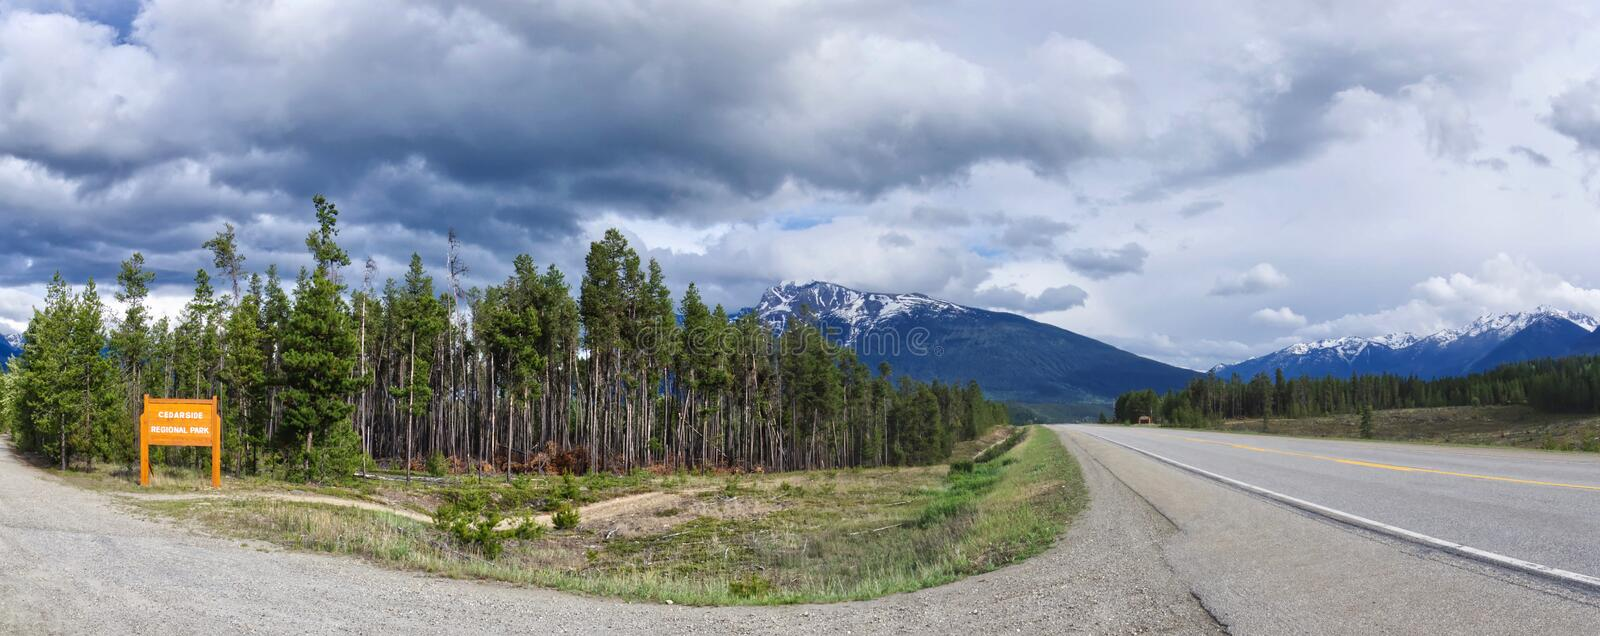 Panoramic view of Icefield parkway highway runs along the beautiful Rocky mountains in the summer in cloudy weather, British royalty free stock photo